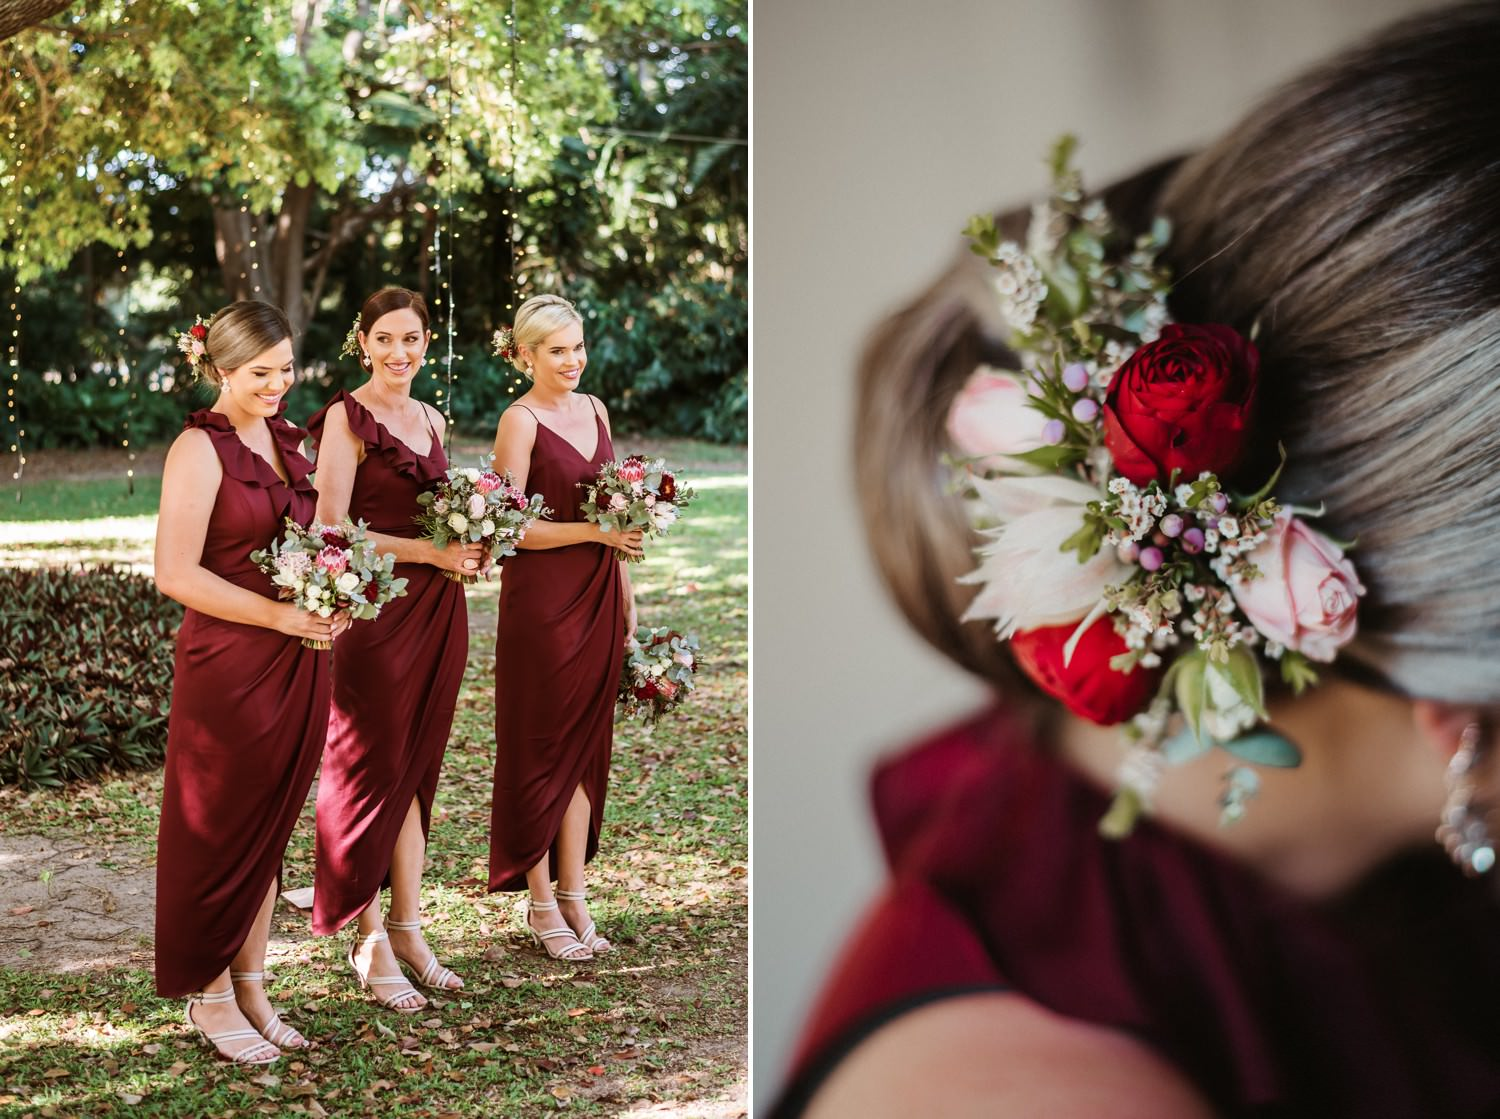 Bridesmaids in merlot coloured dresses carrying bouquets with roses and native flowers.